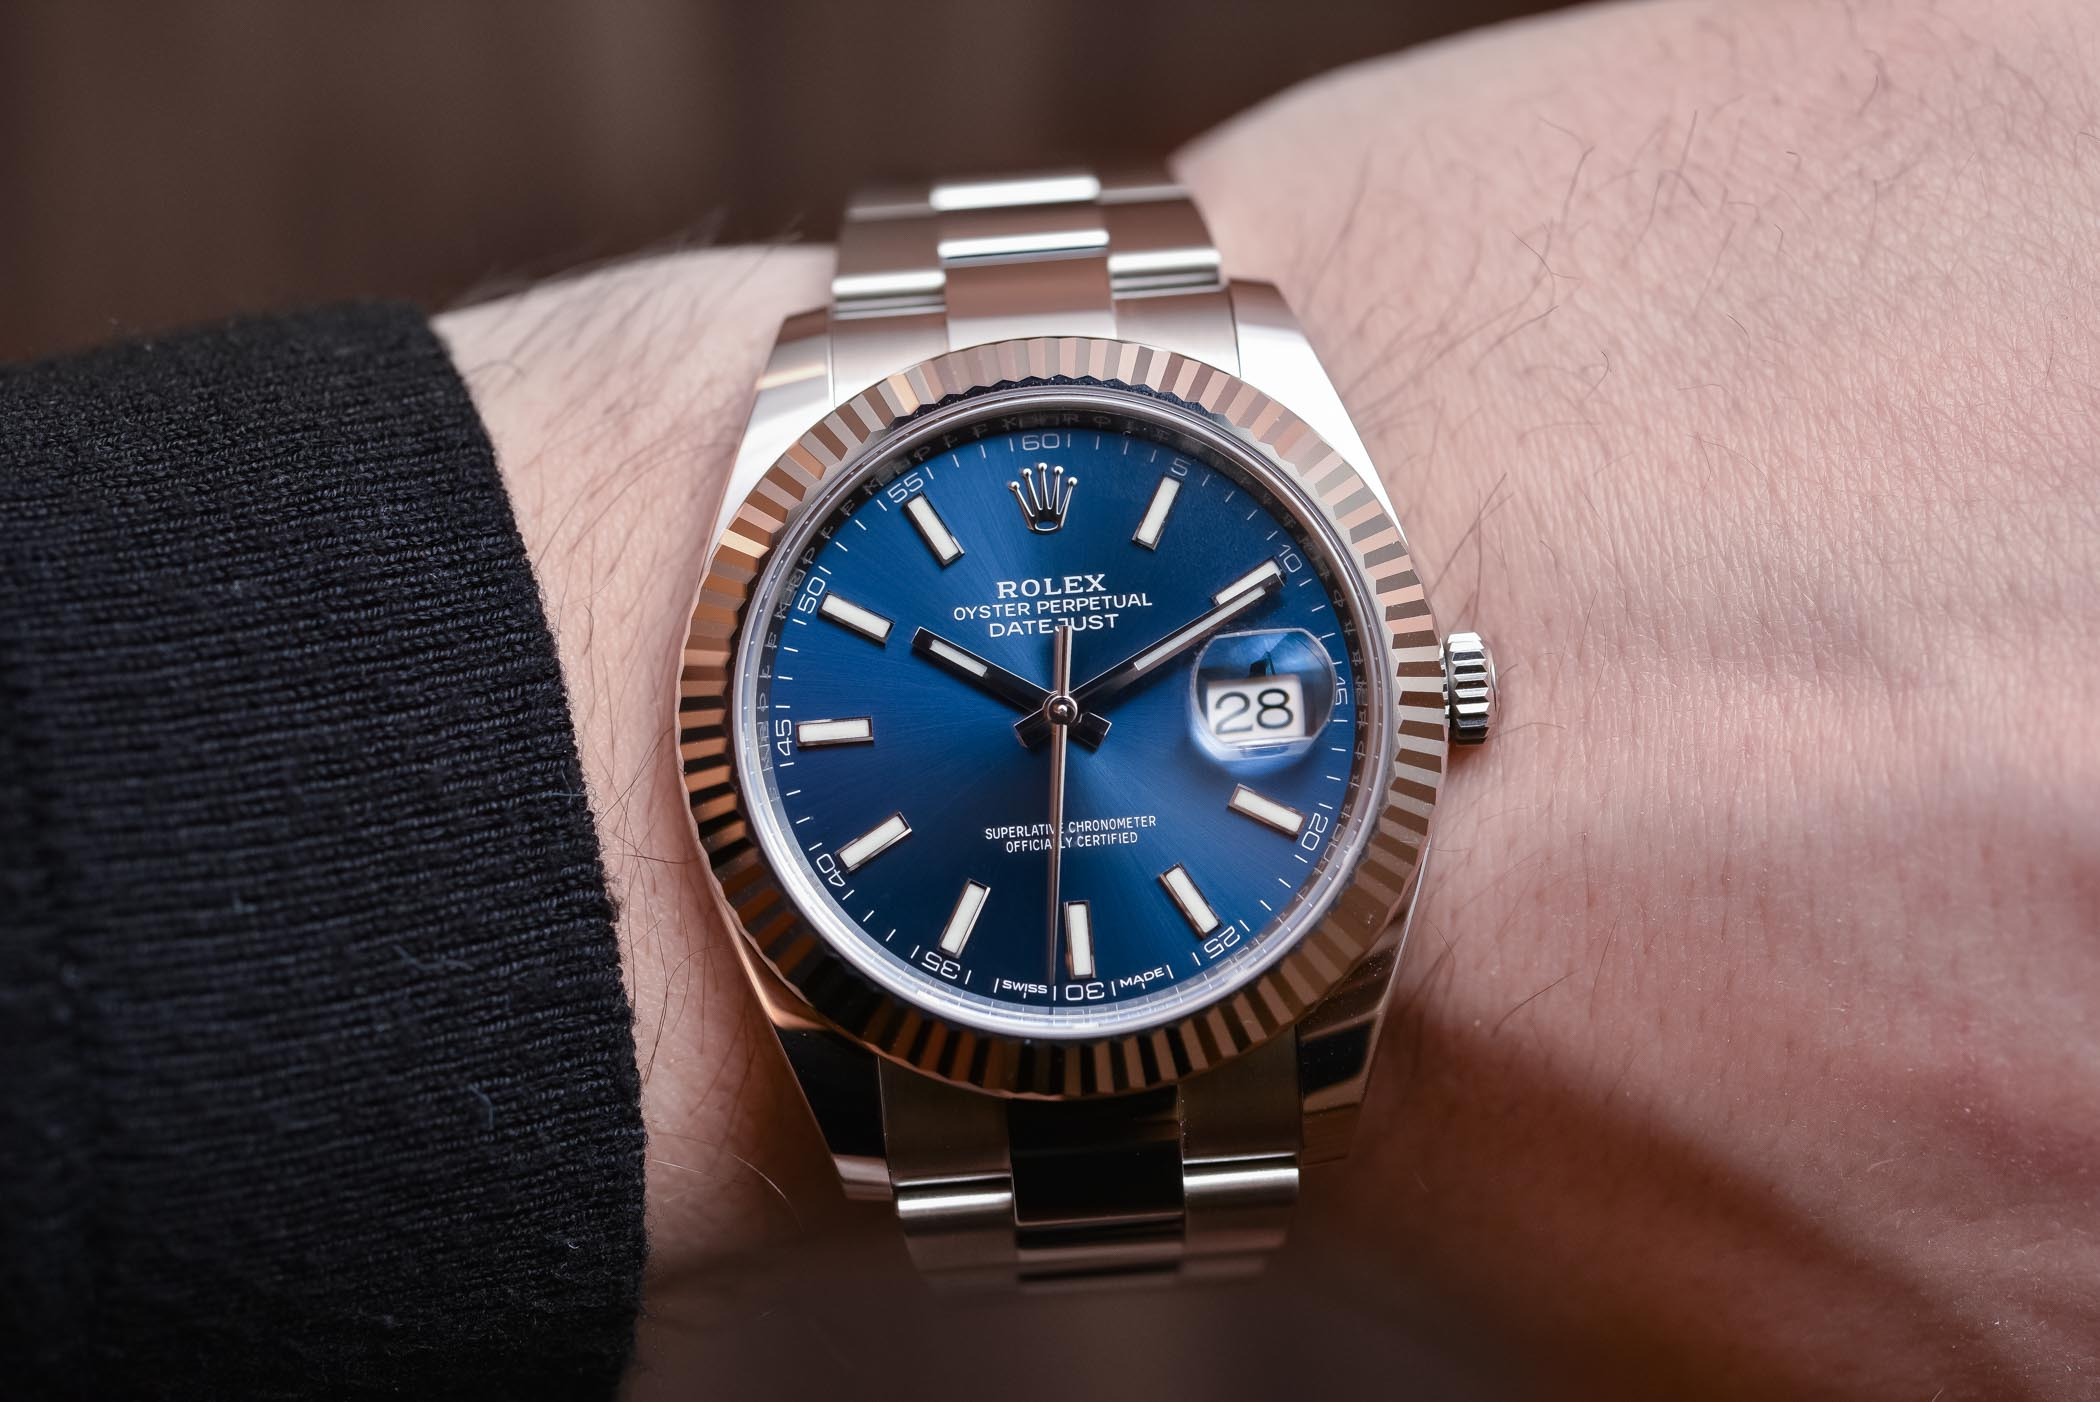 Hands,On \u2013 The Rolex Datejust 41 in Steel (a.k.a. The